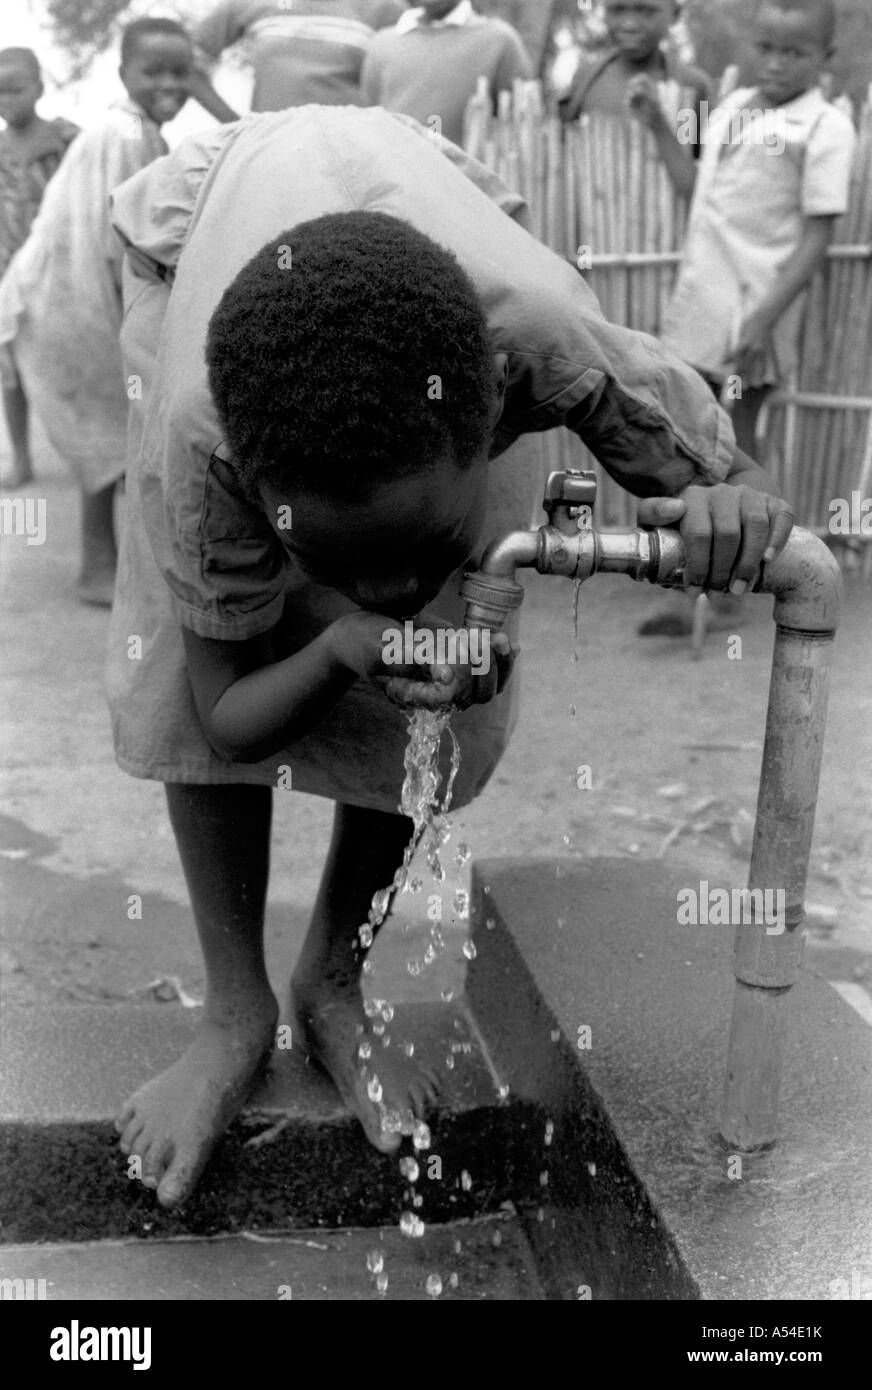 Painet hn1968 563 black and white water boy drinking village spout rwanda country developing nation less economically - Stock Image